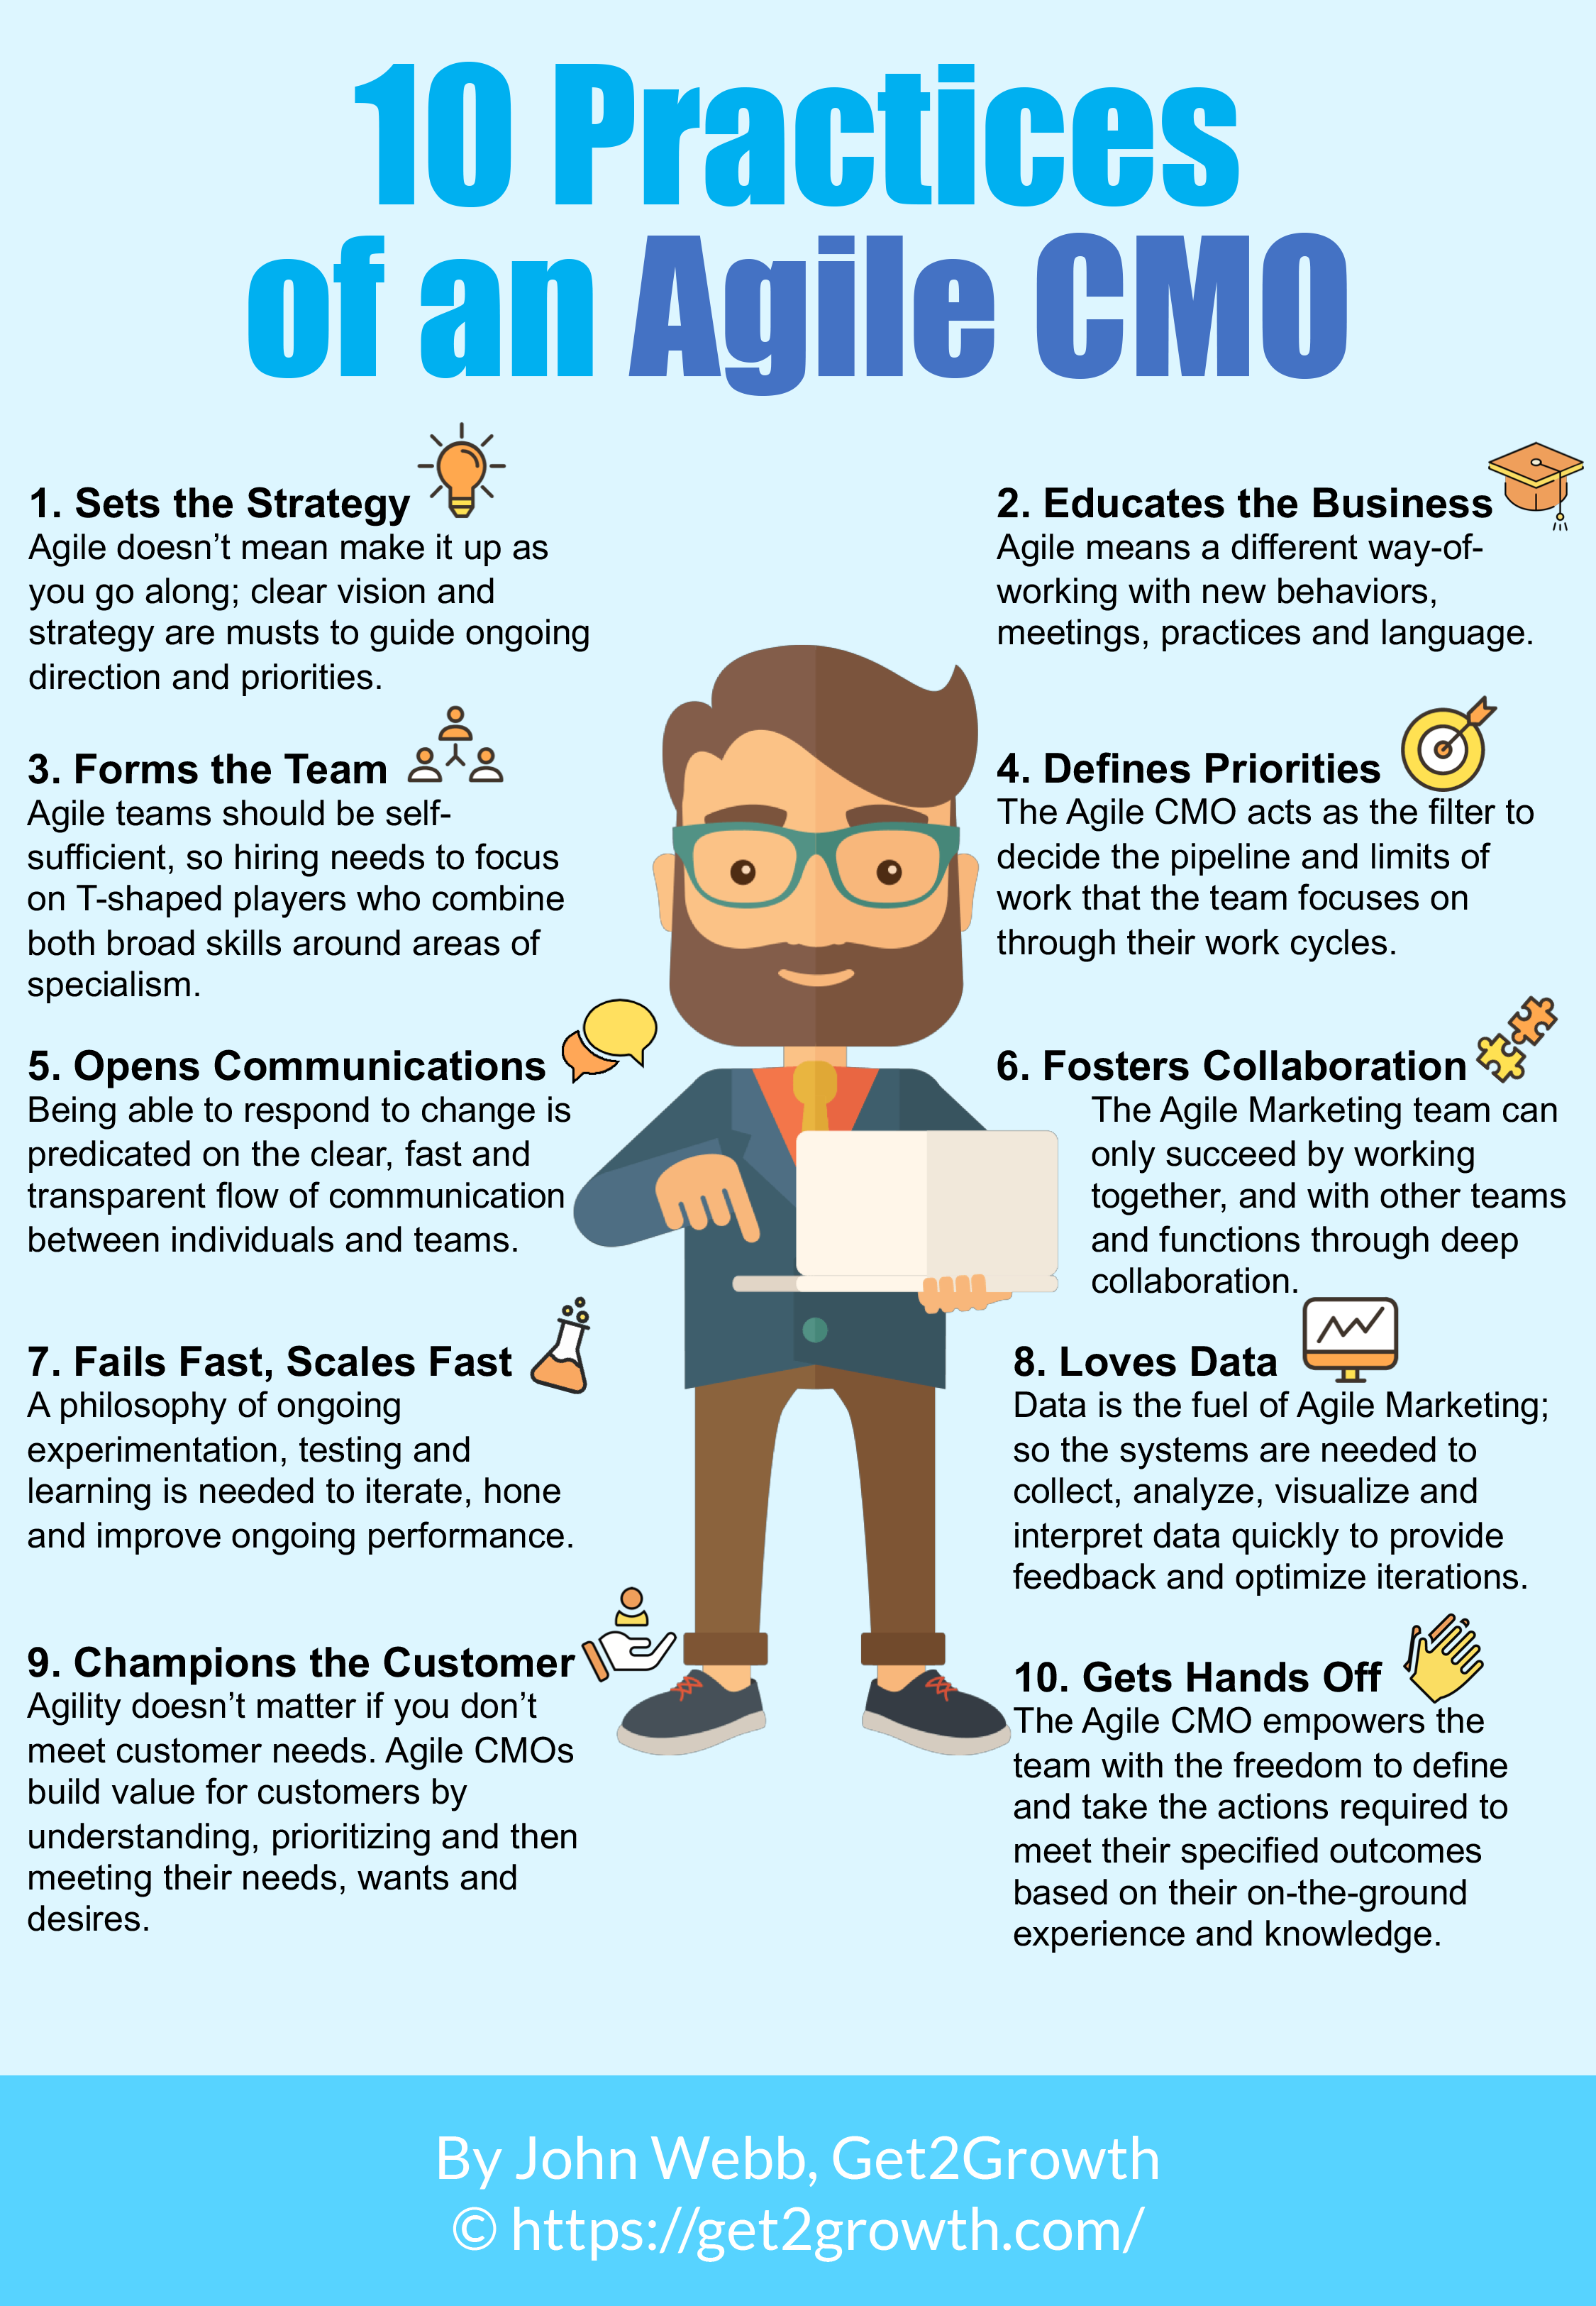 10 Practices of an Agile CMO